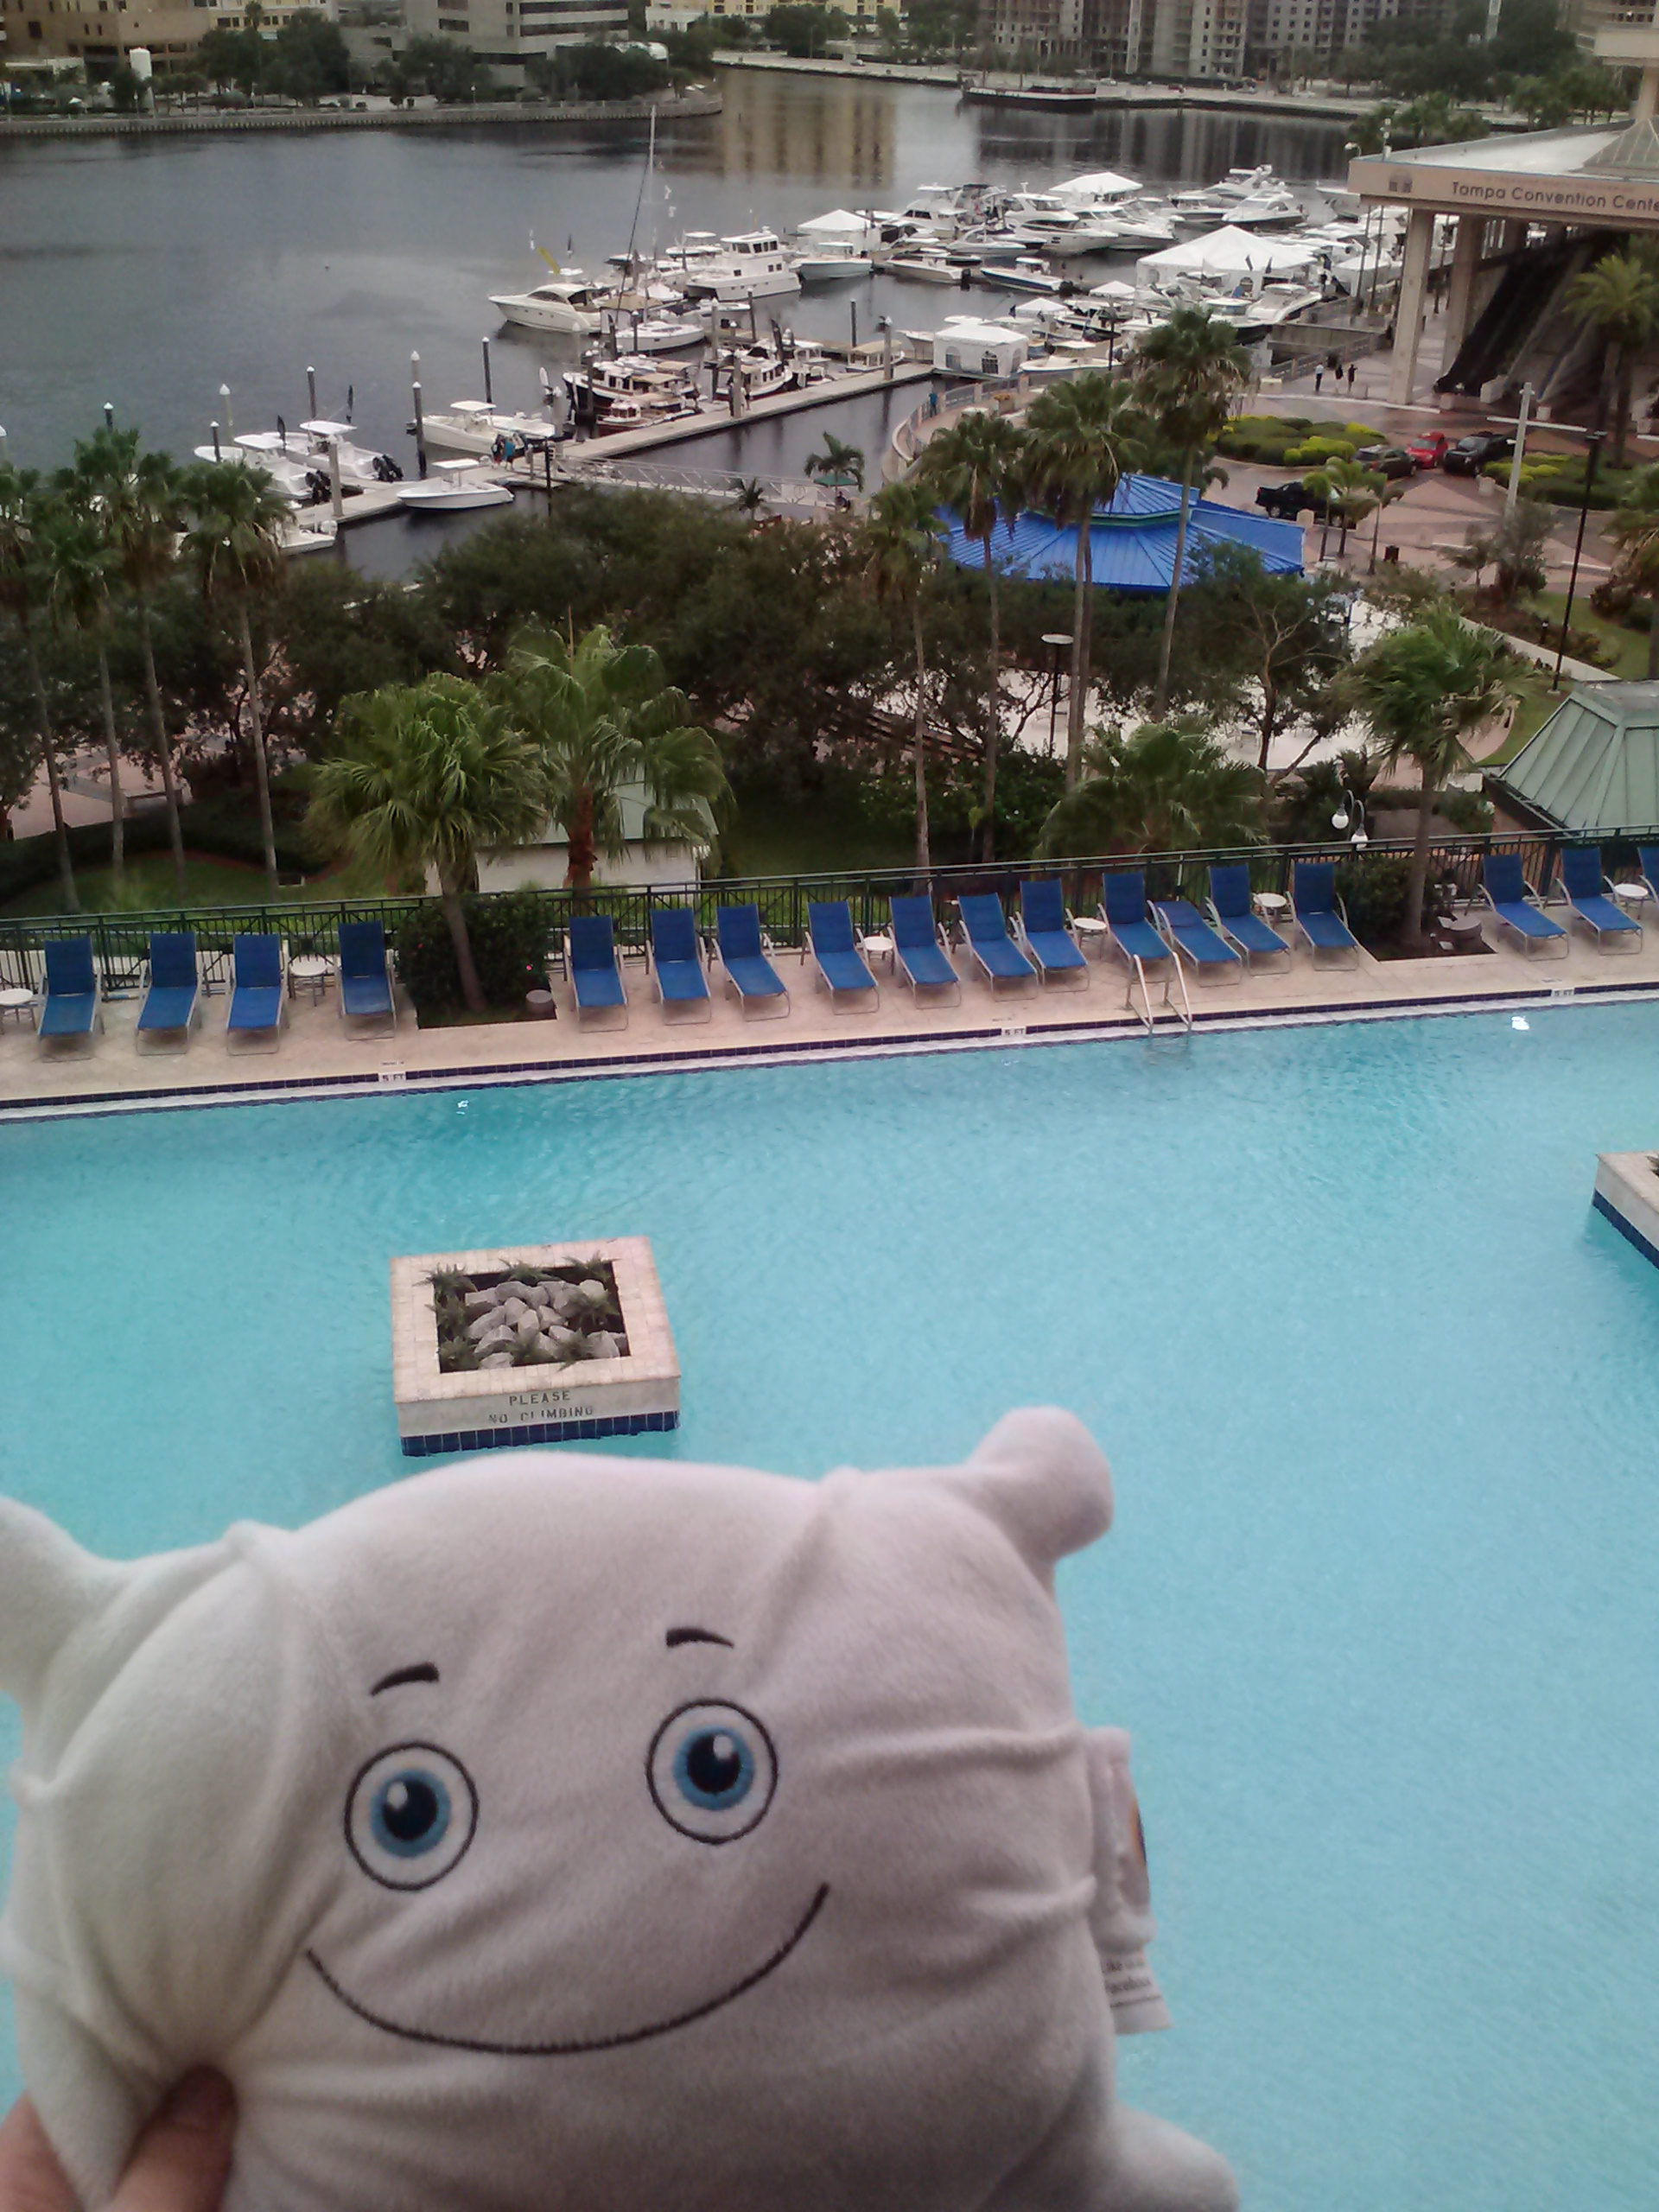 Too bad we are only visiting for a few hours... The pool looks relaxing!